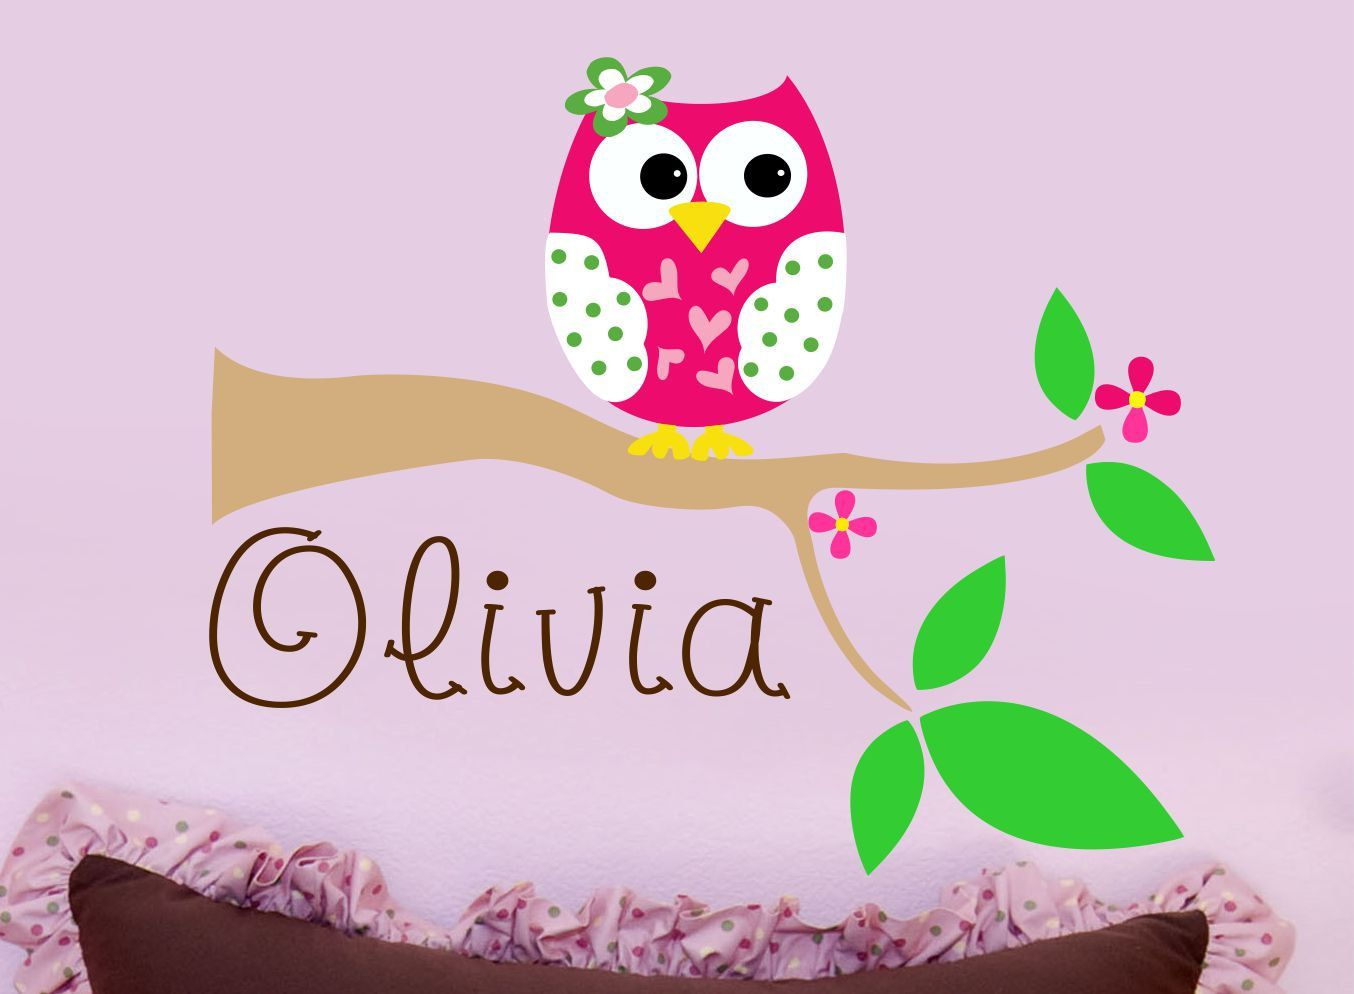 Beautiful Owl Decal Childrens Wall Decal Personalized Baby By LucyLews, $34.00